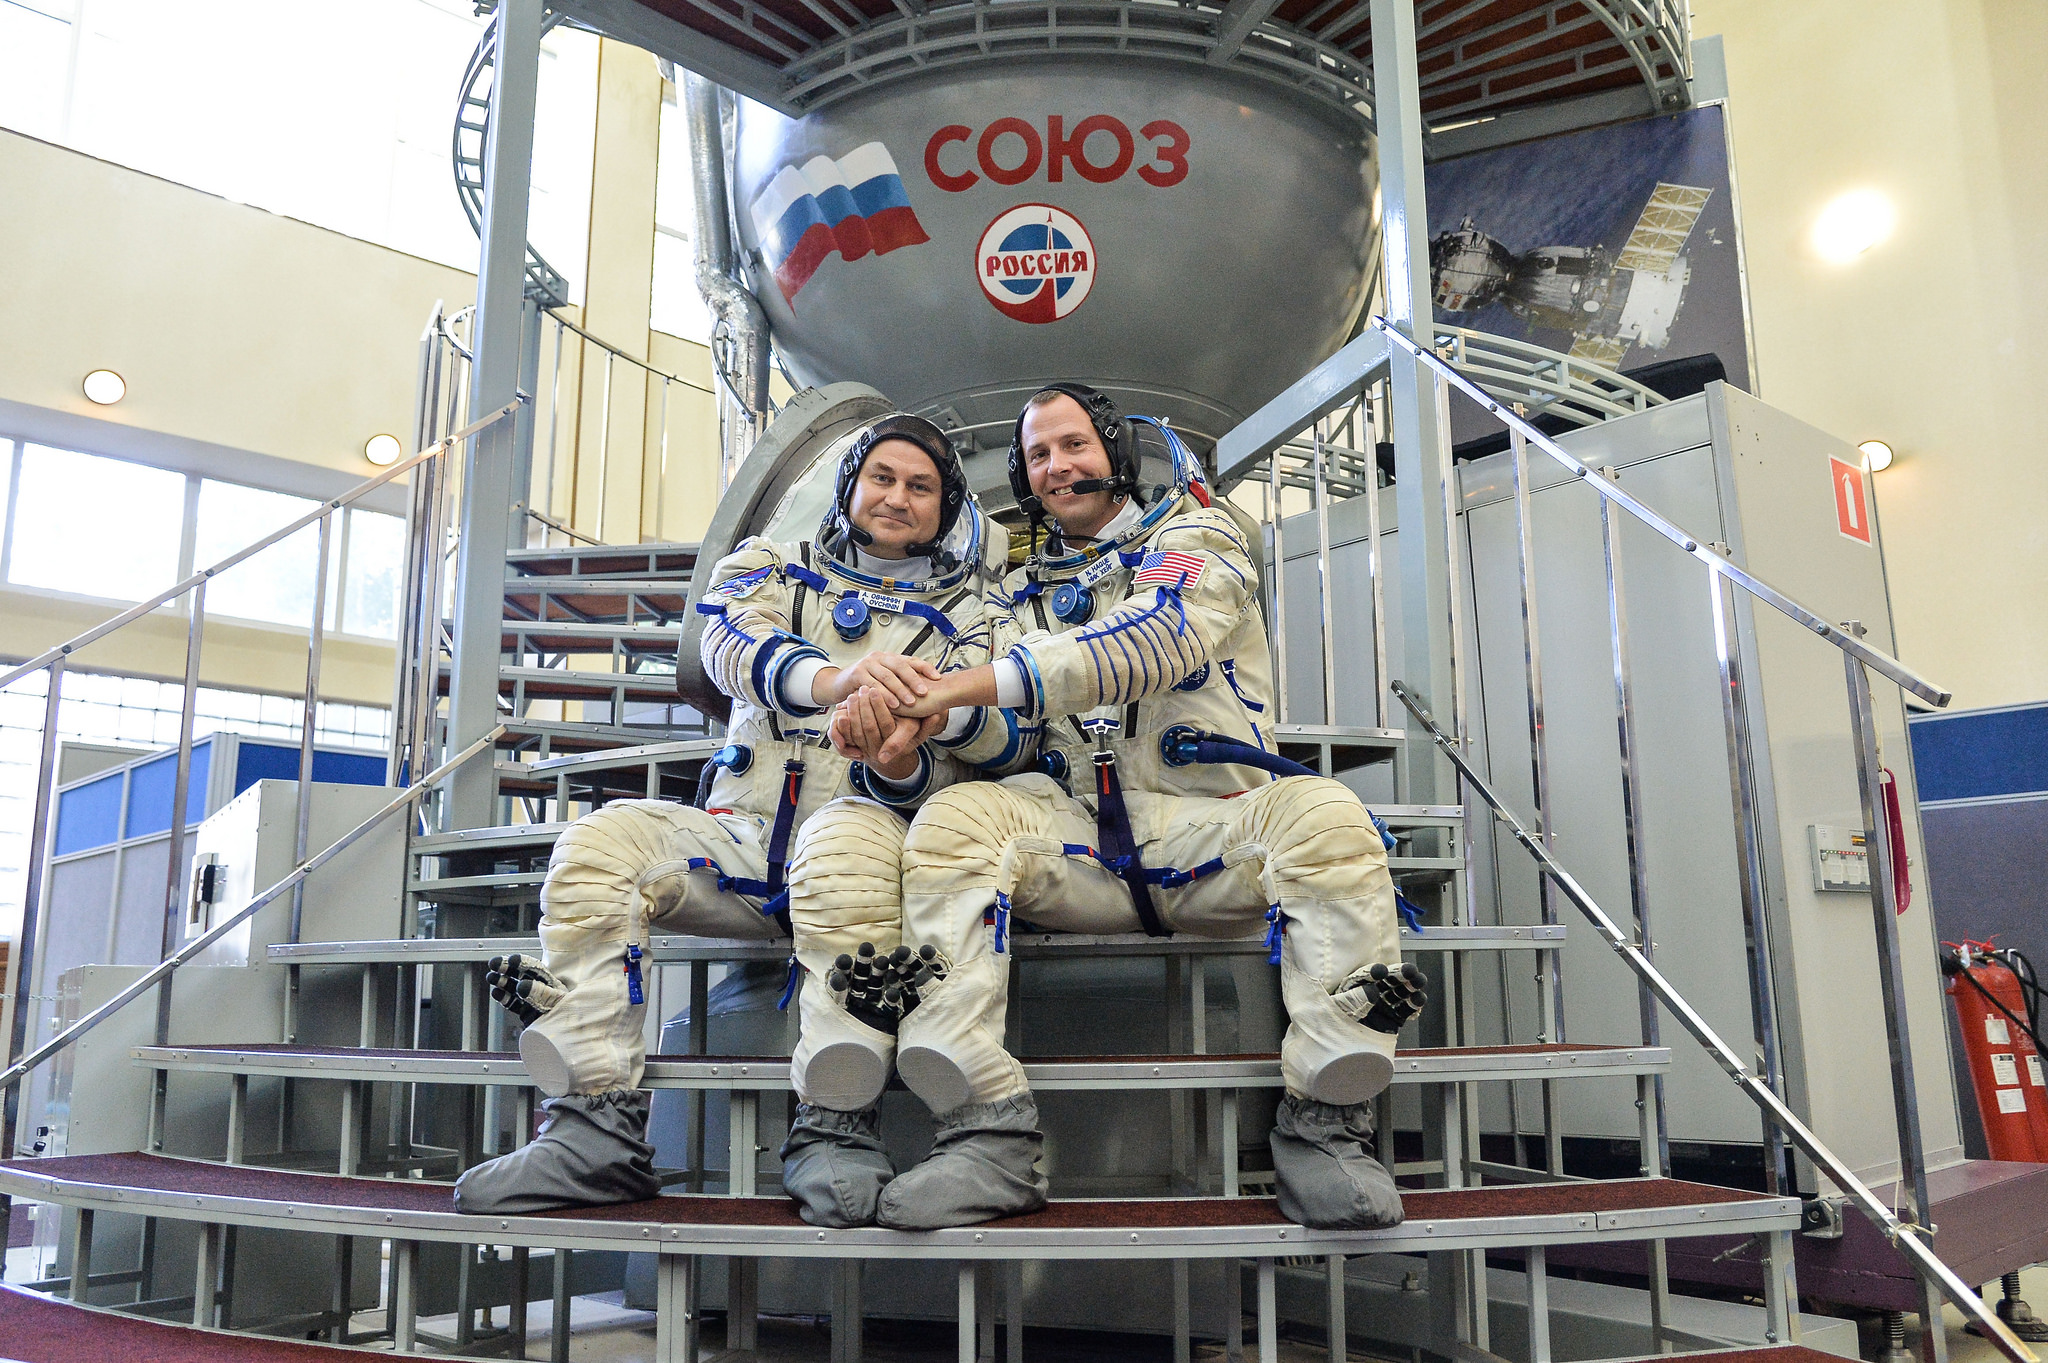 At the Gagarin Cosmonaut Training Center in Star City, Russia, Expedition 57 crew members Alexey Ovchinin of Roscosmos (left) and Nick Hague of NASA (right) pose for pictures Sept. 14 during their Soyuz qualification exam activities. (Credit: NASA/Sarah Volkman)